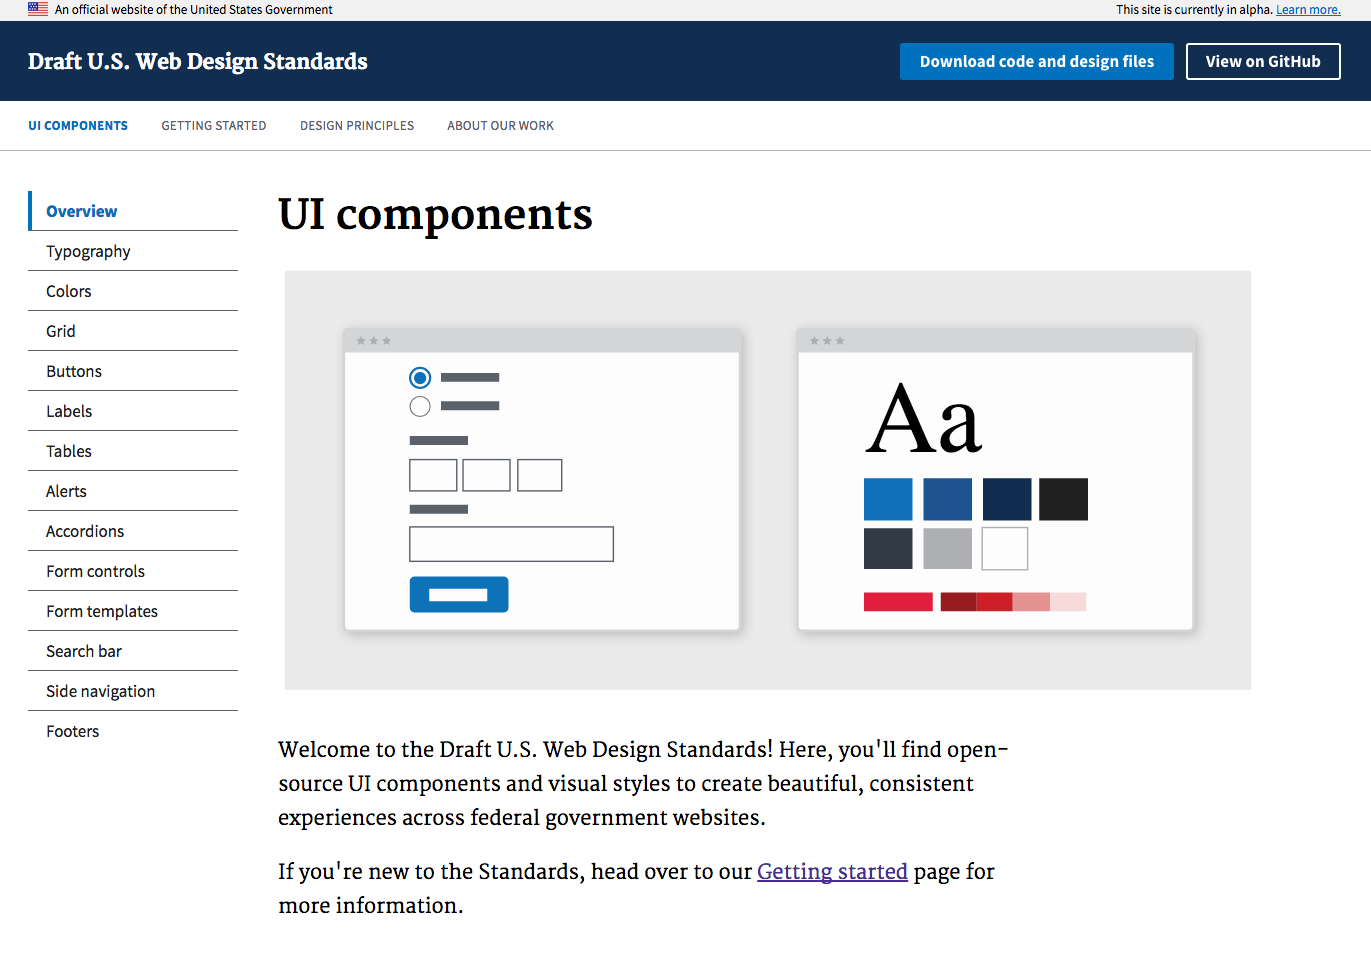 The Draft U.S. Web Design Standards are the design system for the United States federal government.